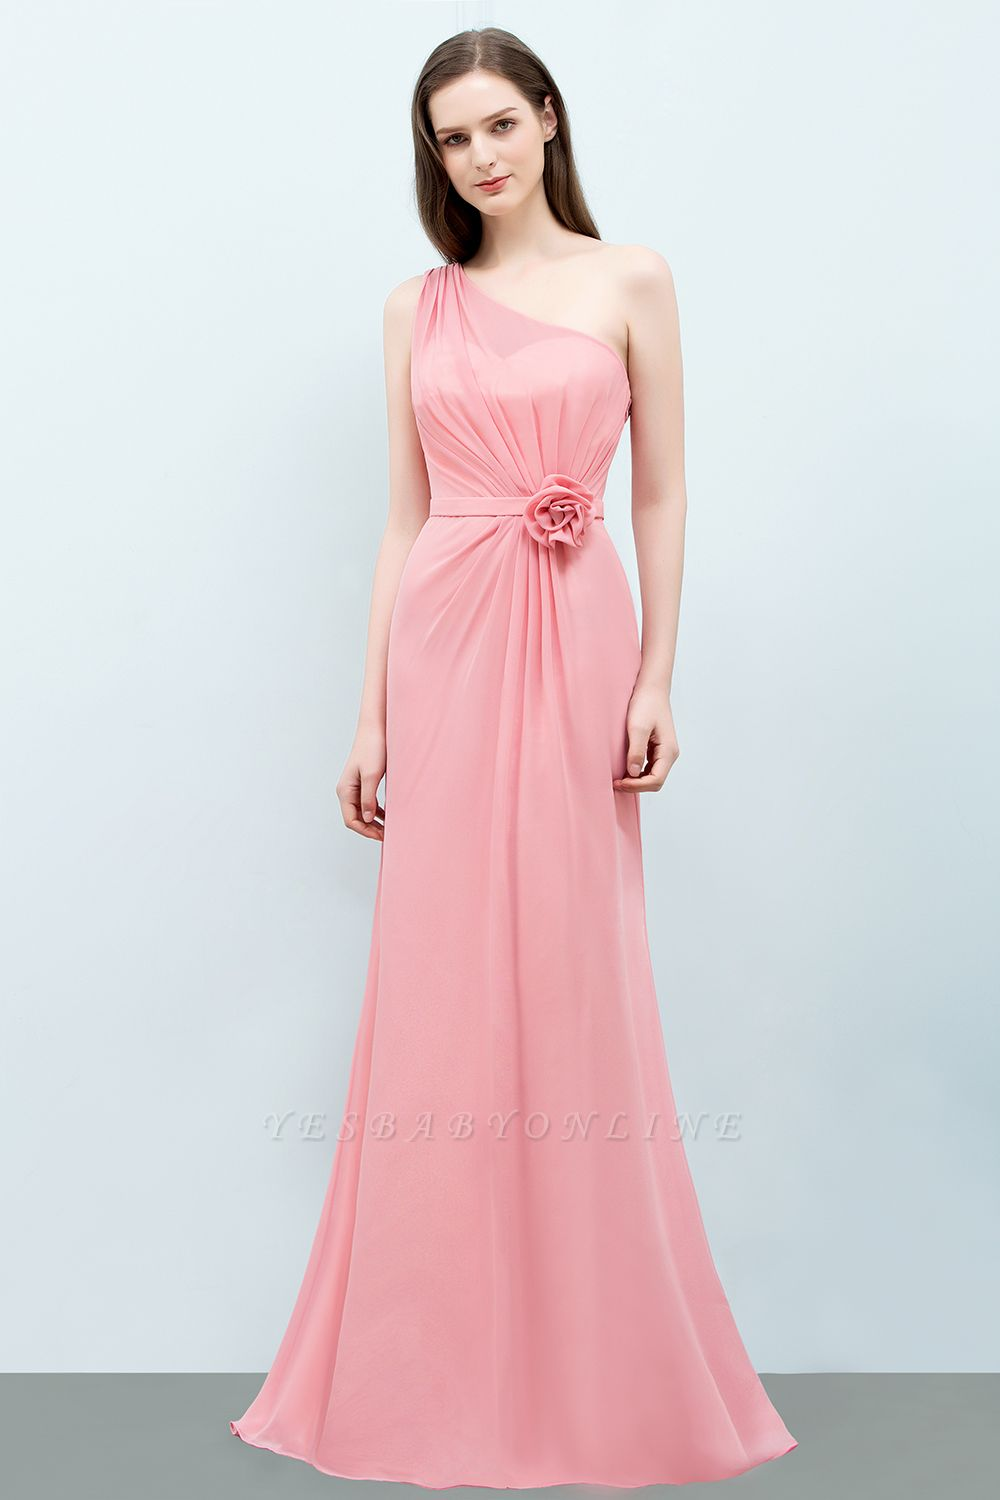 Mermaid  One-shoulder Sleeveless Ruffled Floor-Length Bridesmaid Dresses with Flower